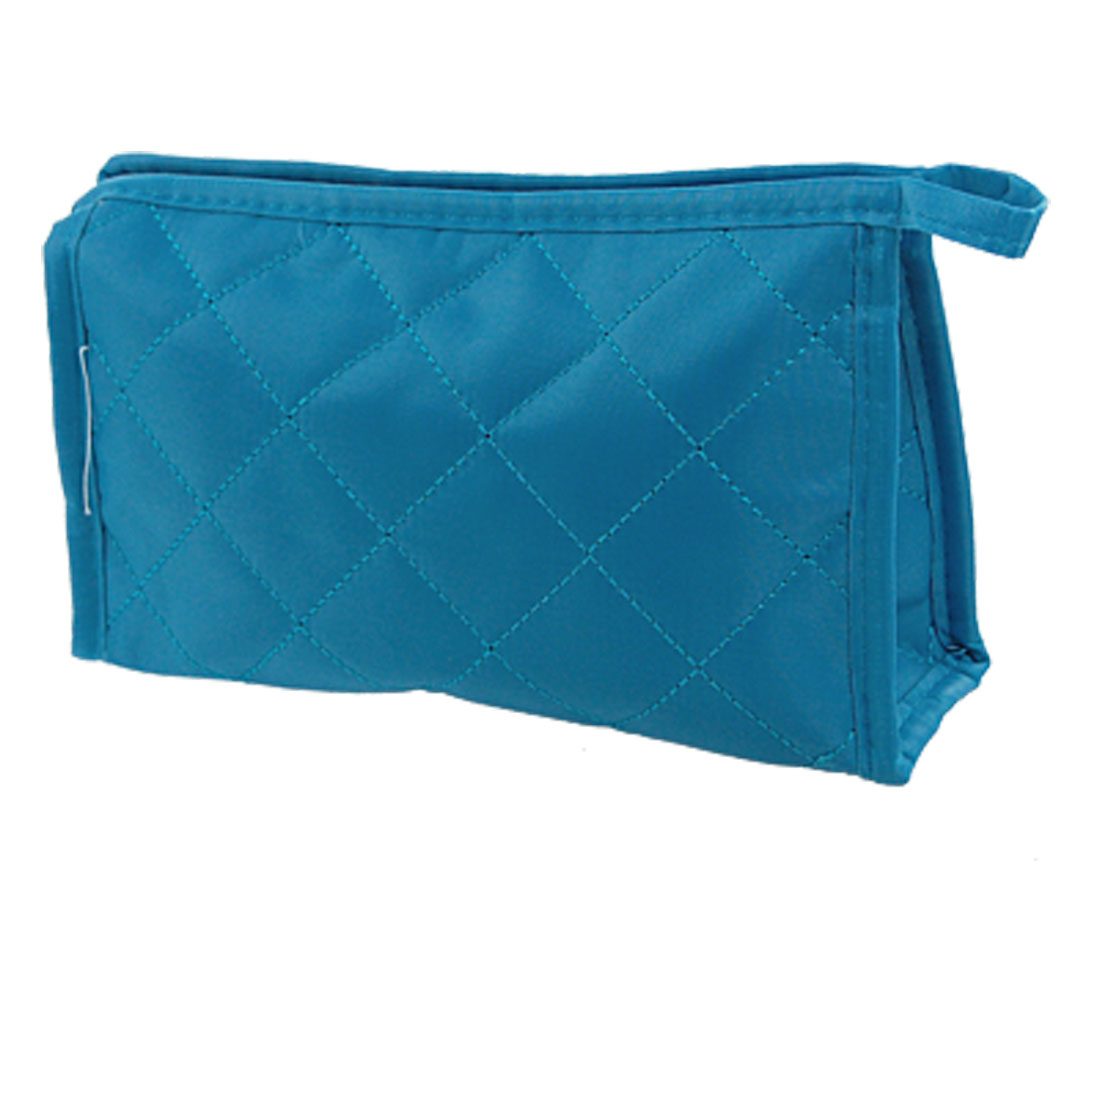 Cosmetic Makeup Small Zipper Case Bag Rectangle Pouch Blue for Women